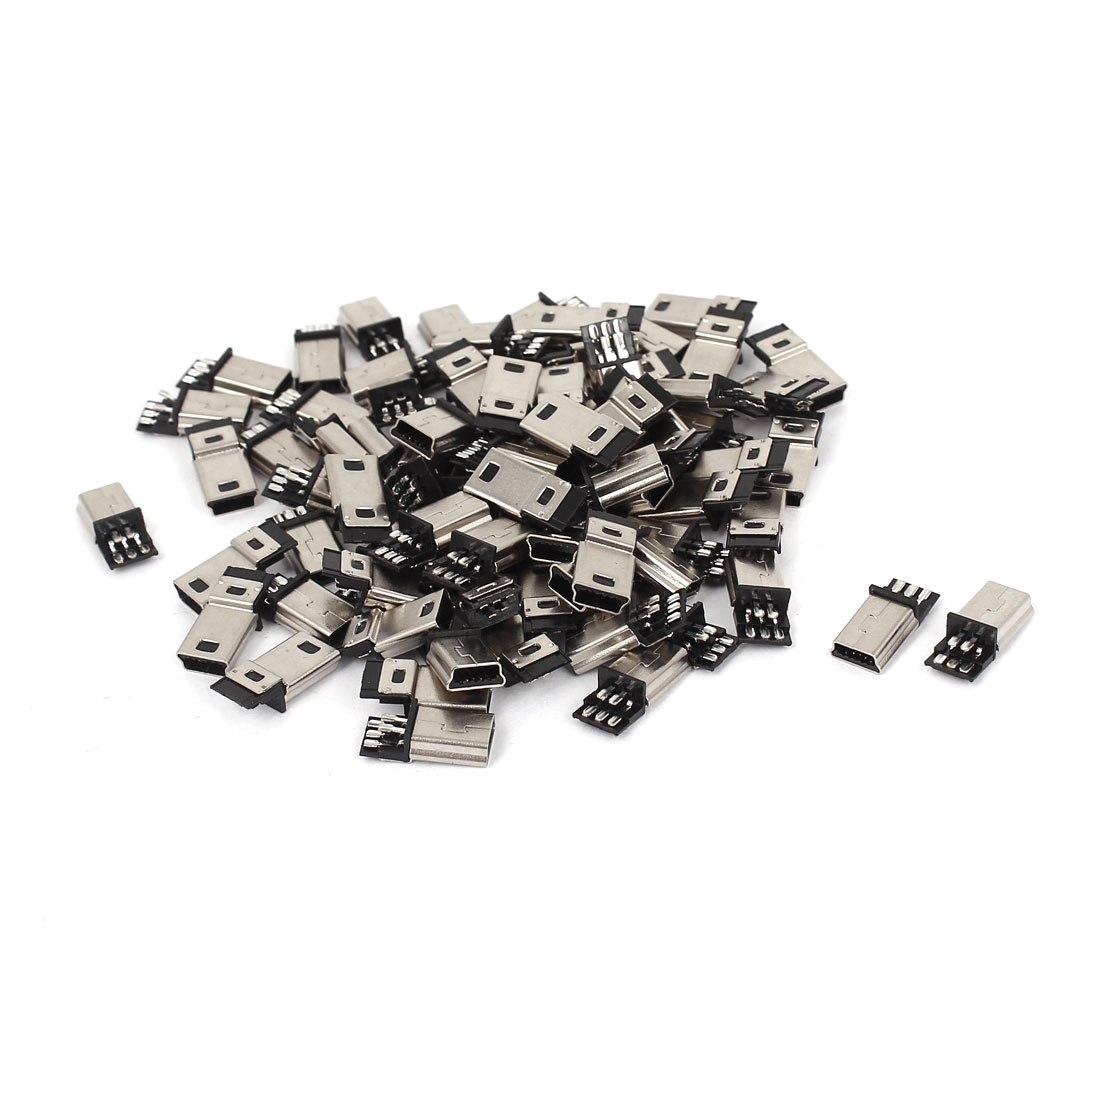 80 Pcs Mini USB 5Pin Type B Male Connector PCB Mounting Socket Adapter